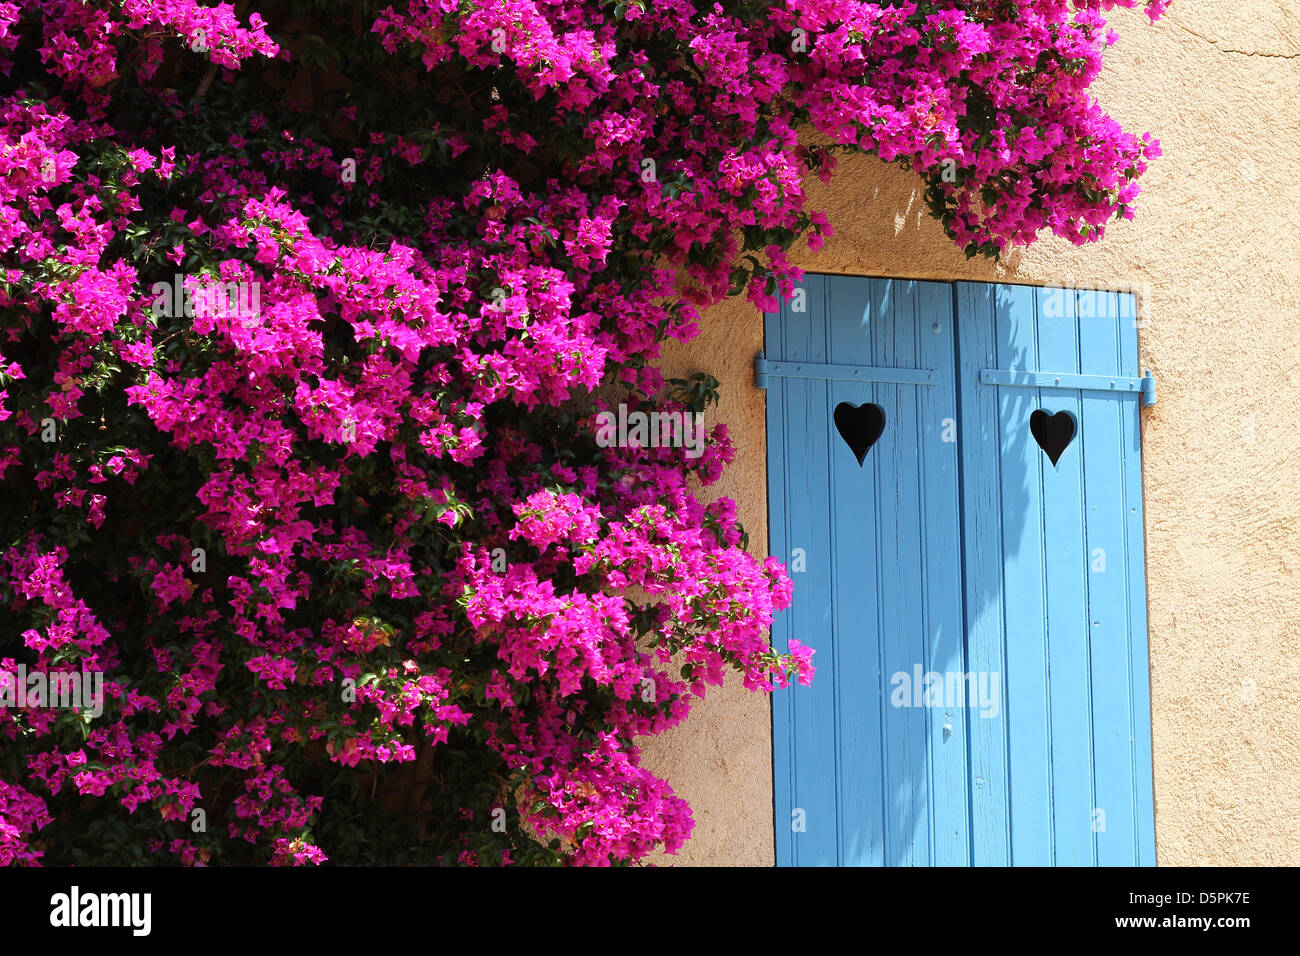 Sunny summer day in Porquerolles, French Riviera. Bougainvillea bush around the window with blue shutters with heart - Stock Image